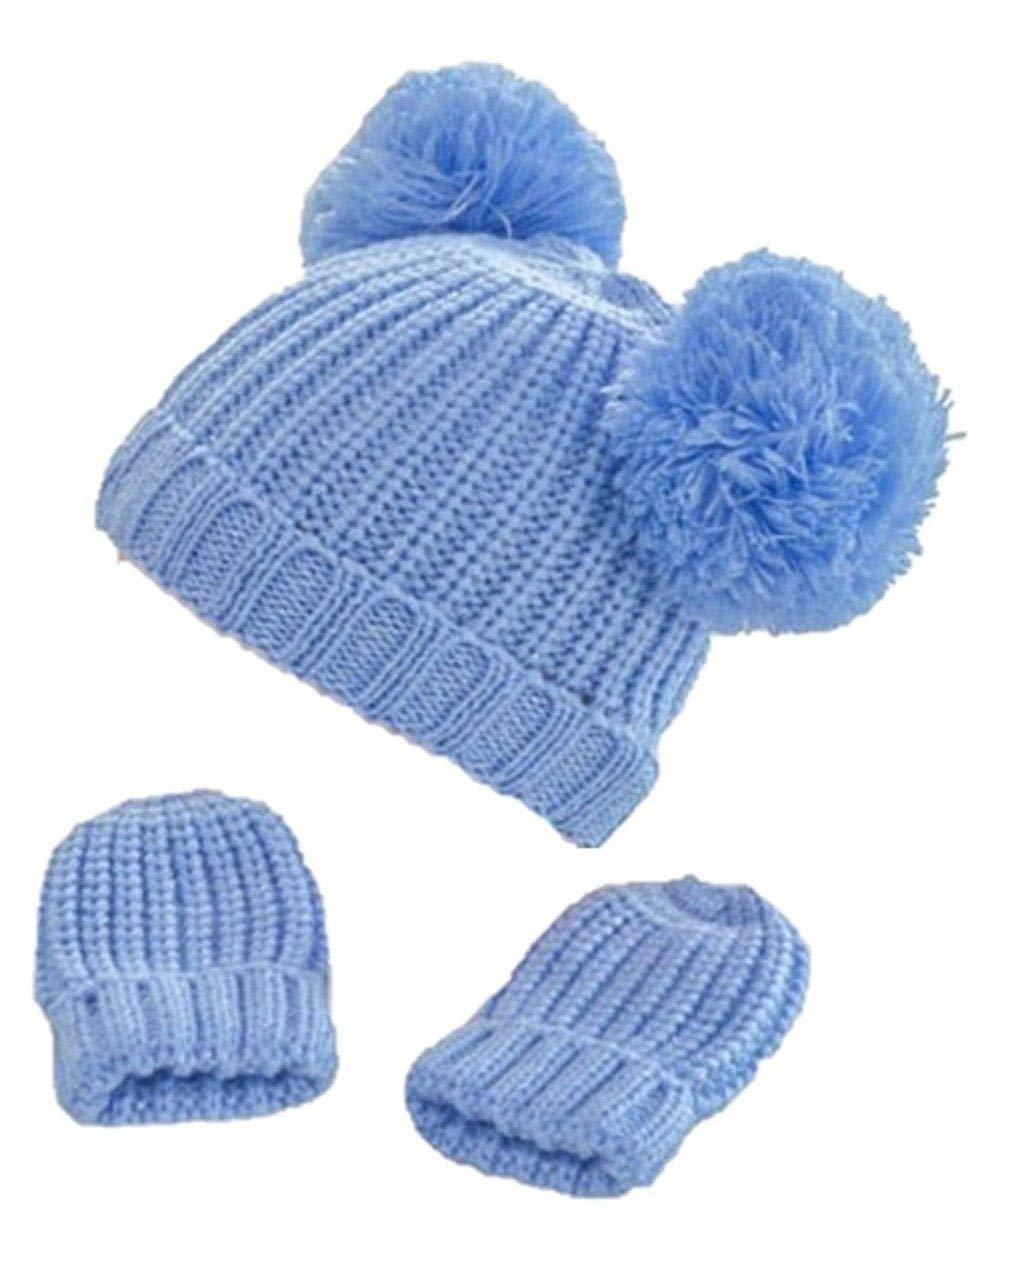 Infants mittens and hat set style H492 colour blue 12-24 months Soft Touch